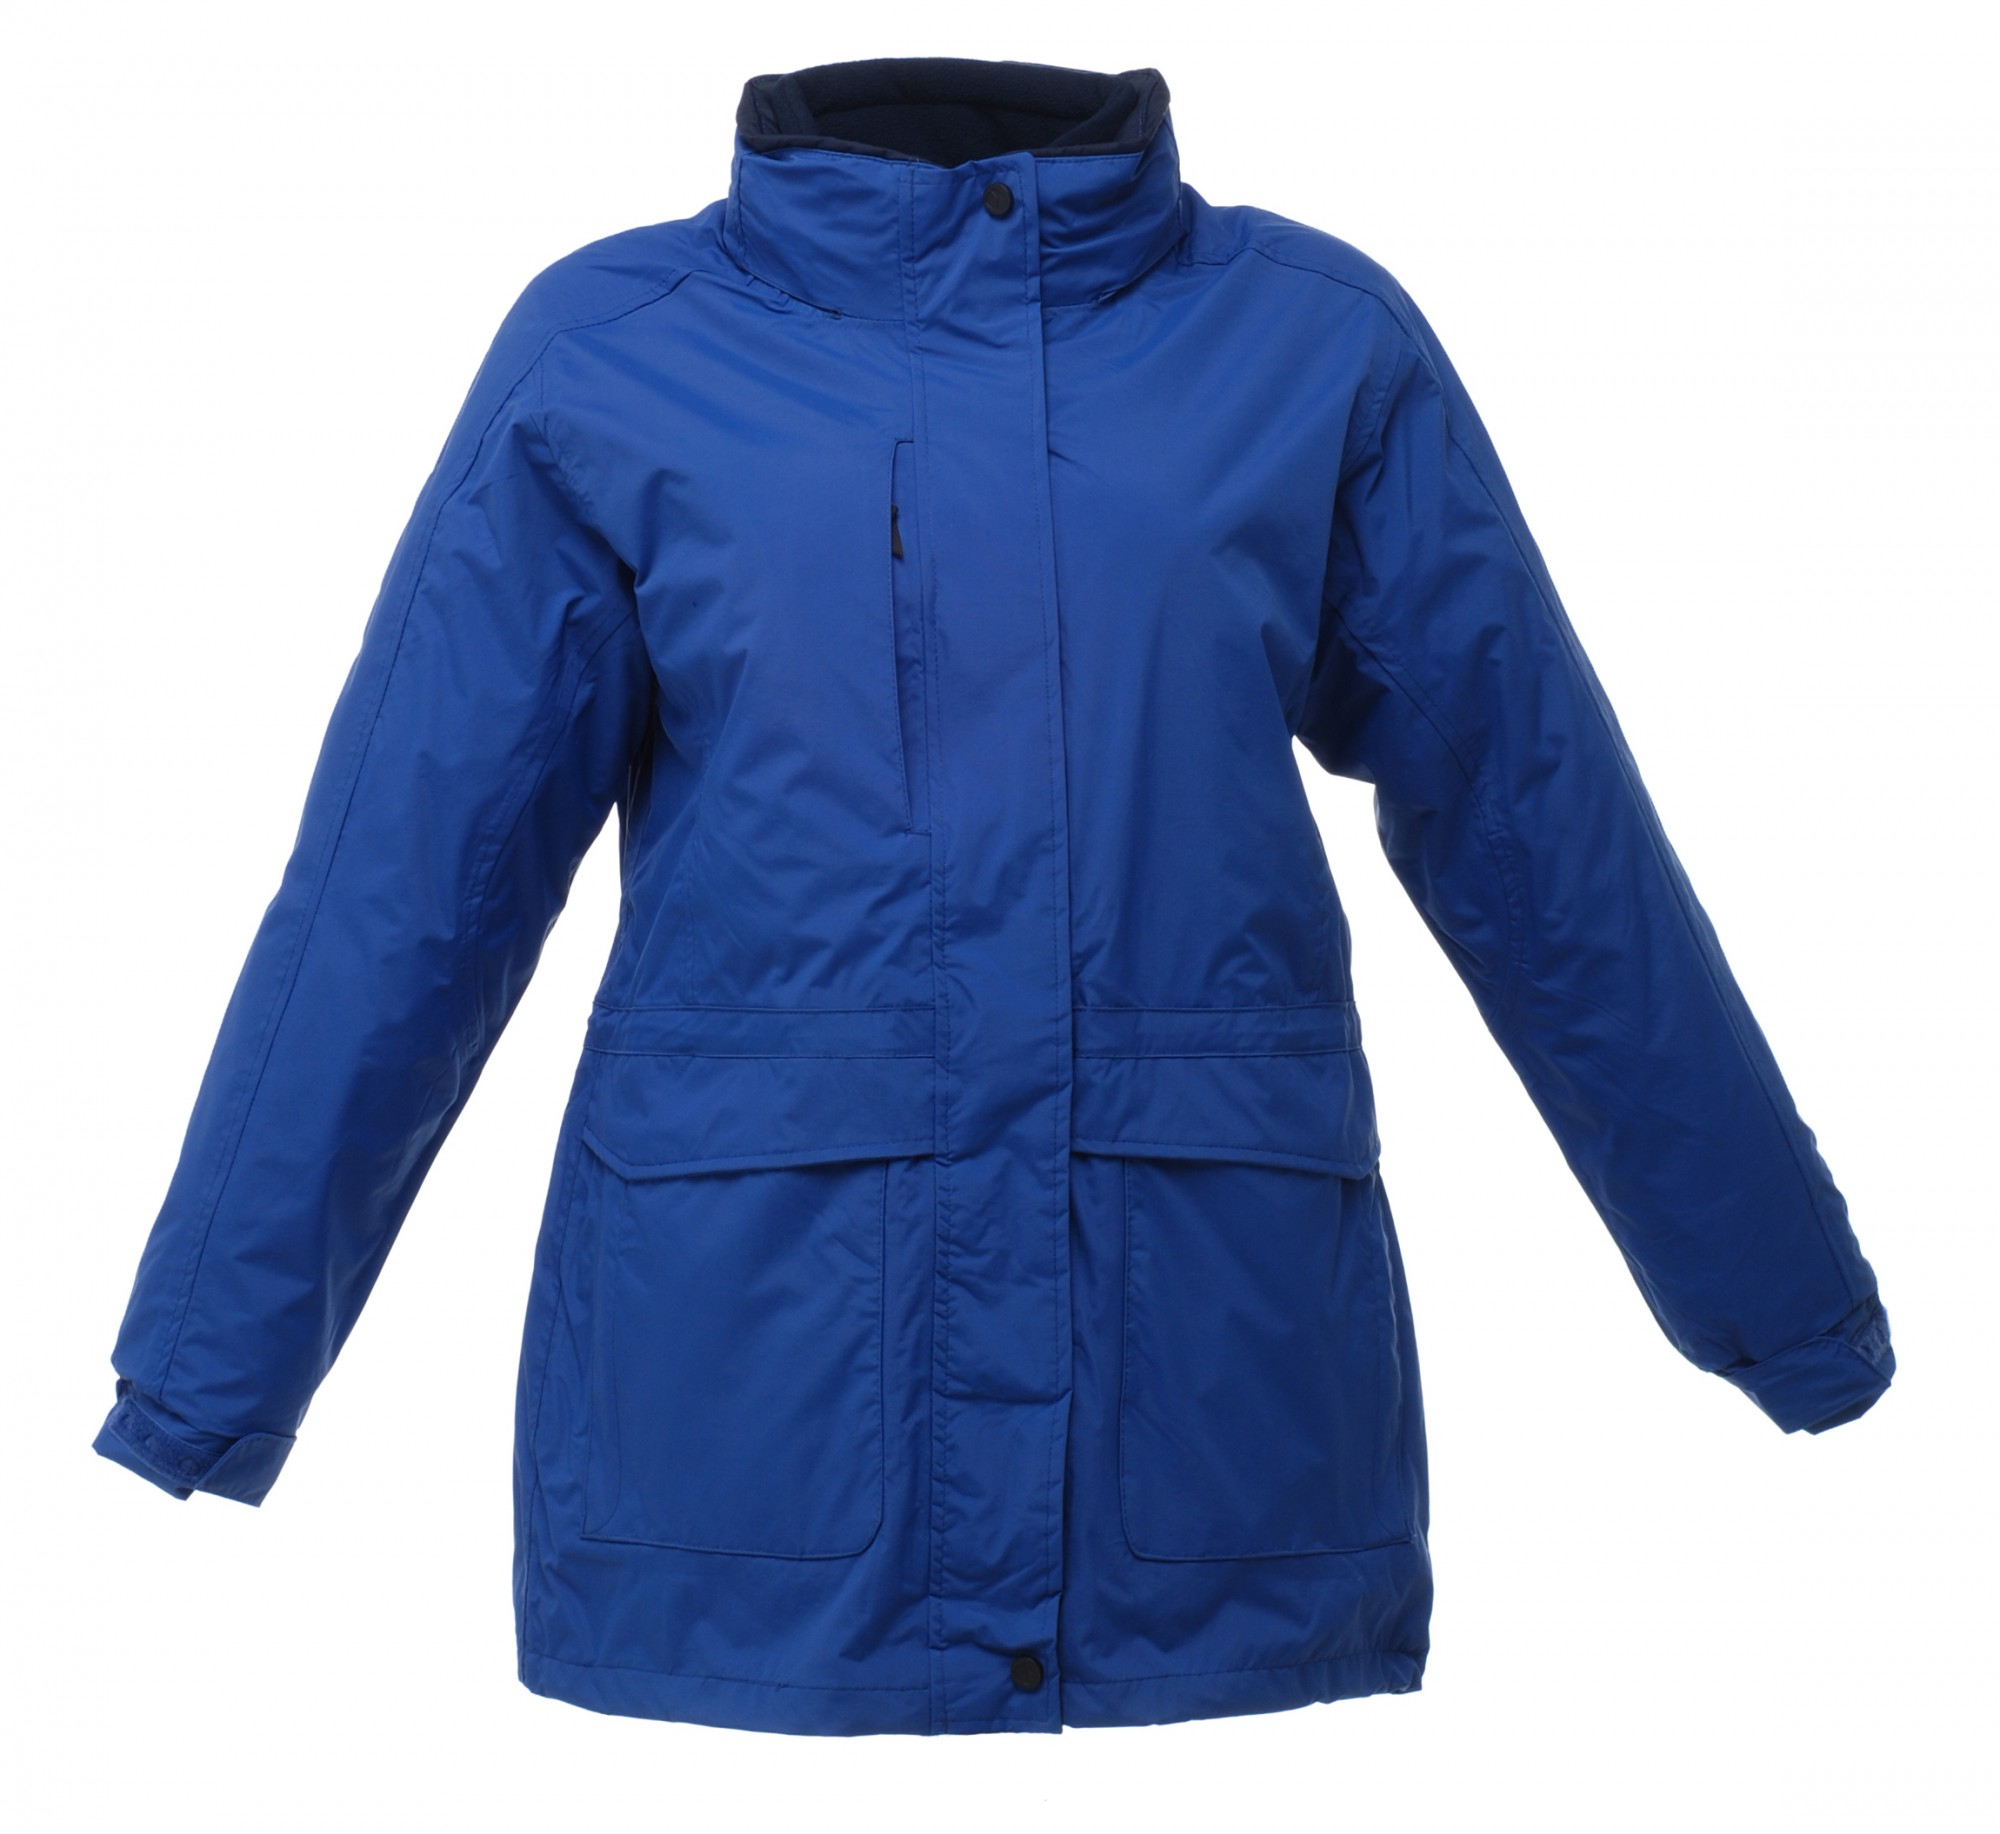 Regatta Women's Benson II Jacket